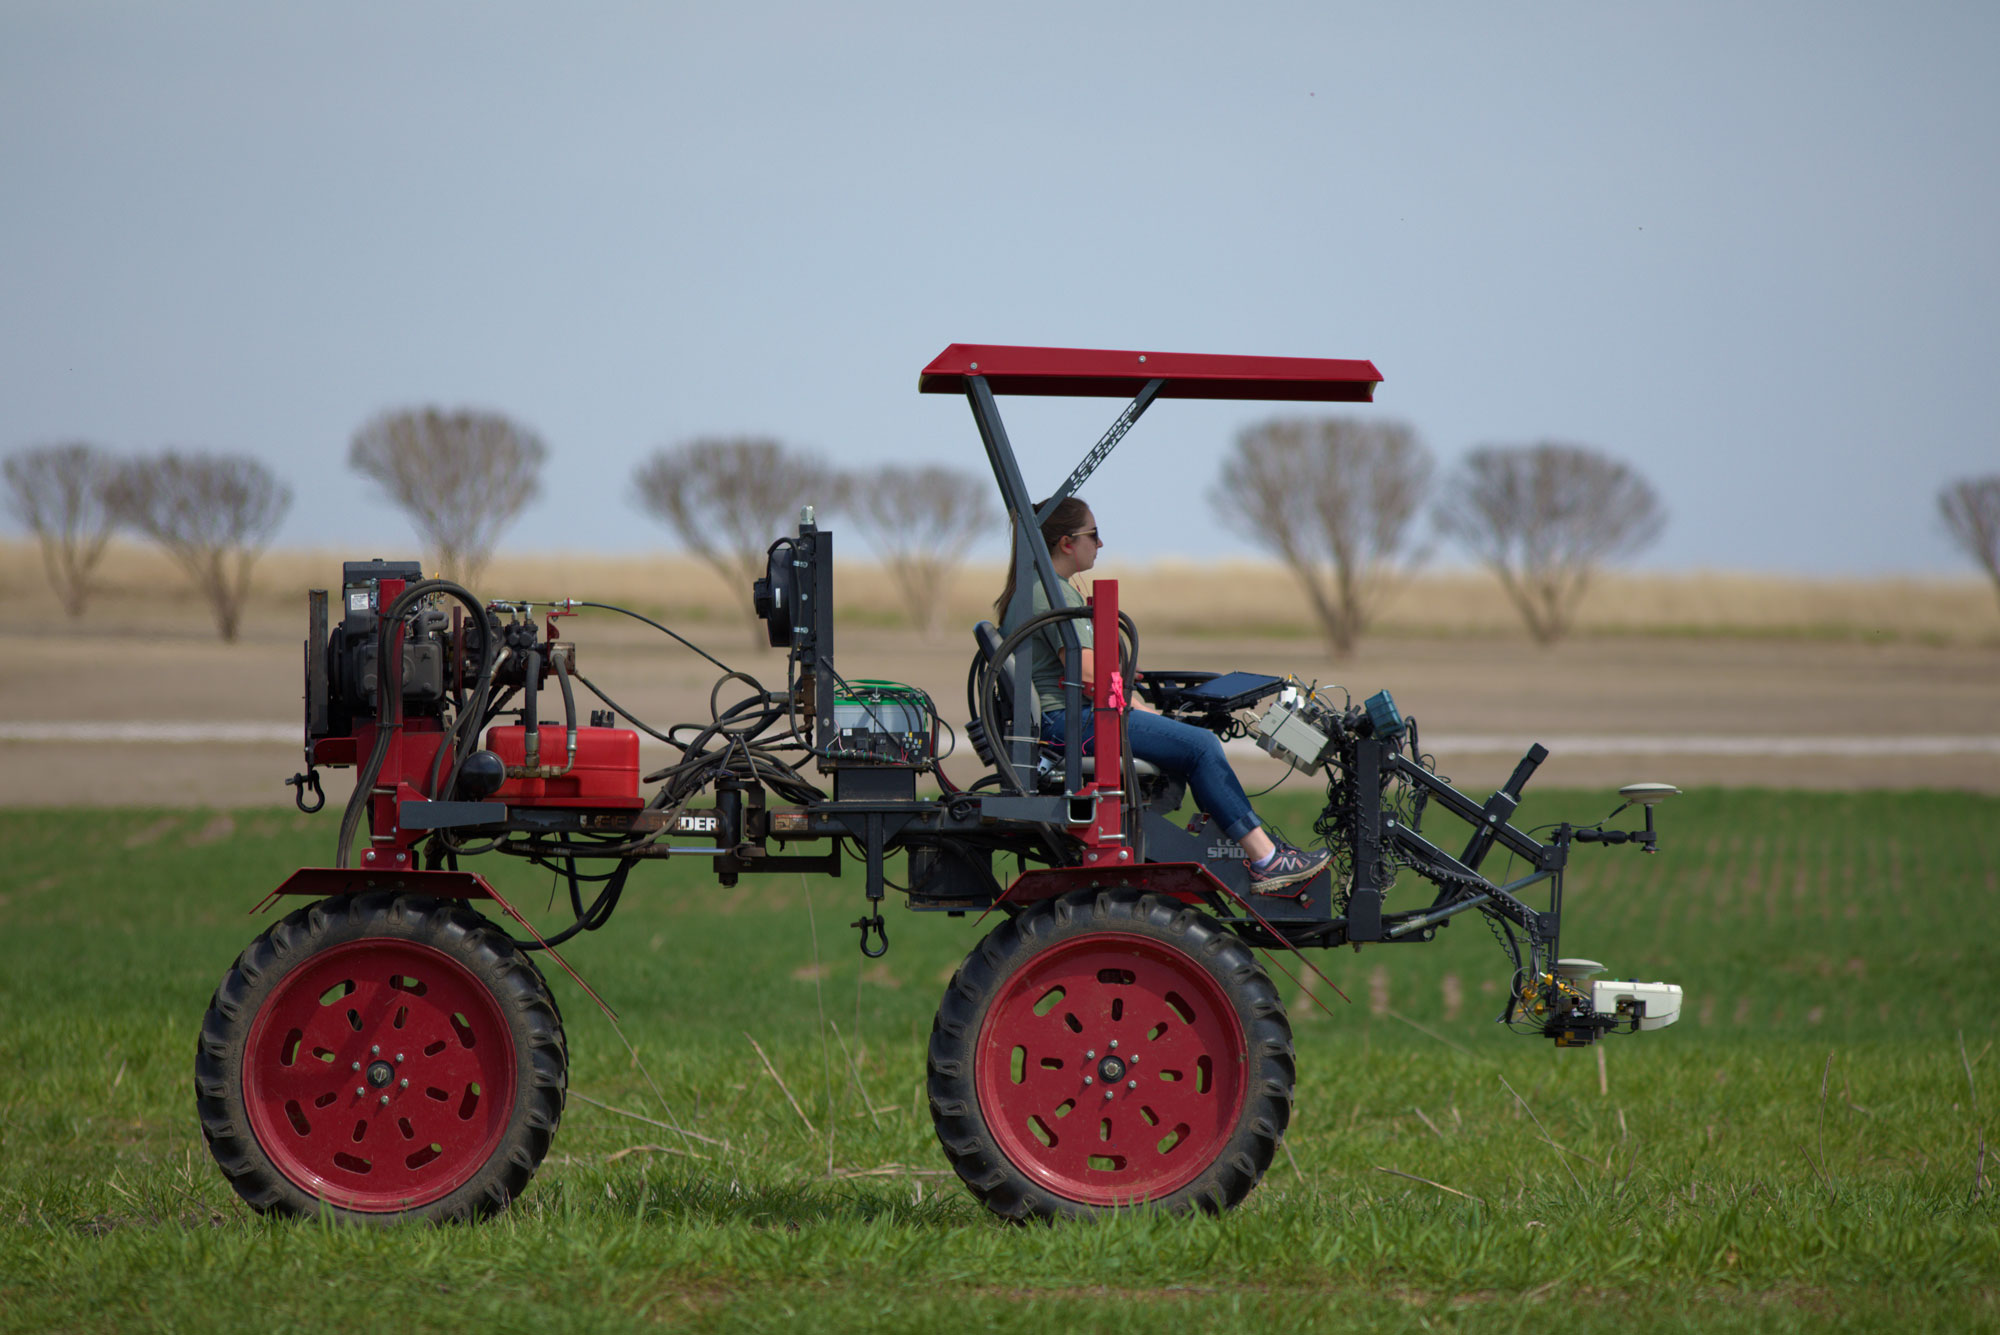 April Mueller, research assistant, drives a specially designed tractor called the Spider